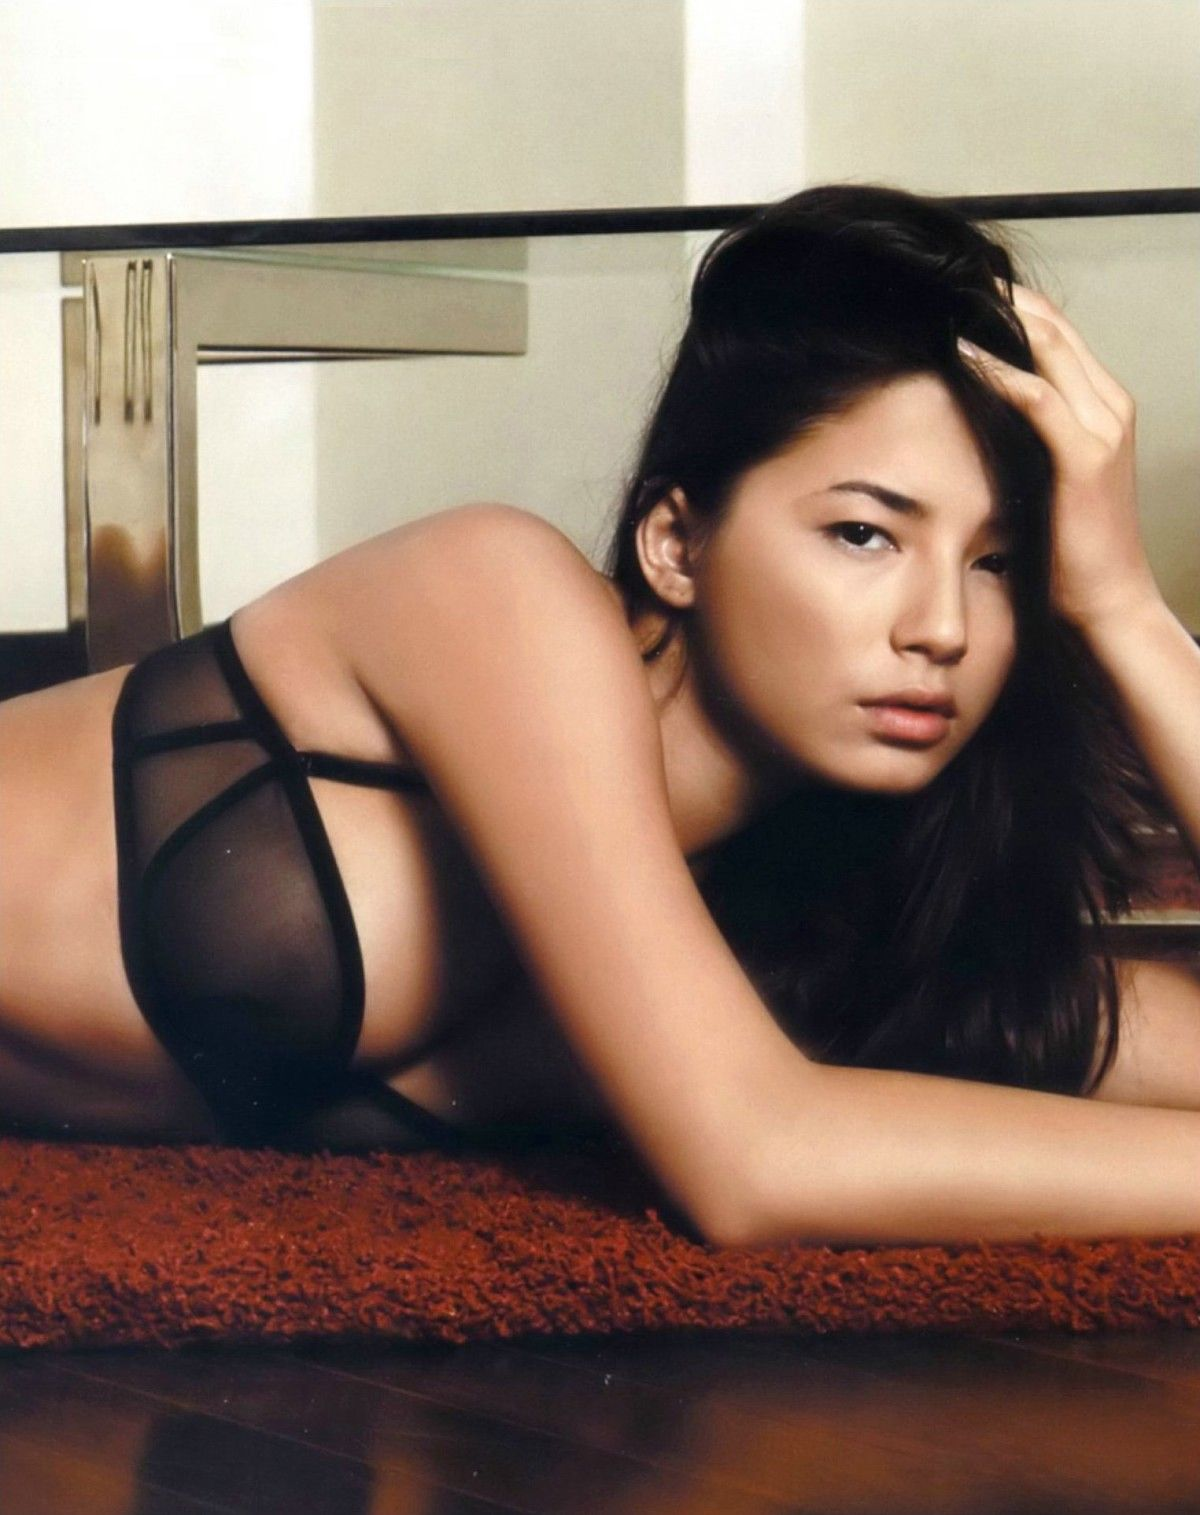 Jessica Gomes AUS nude (73 foto and video), Topless, Sideboobs, Boobs, bra 2006